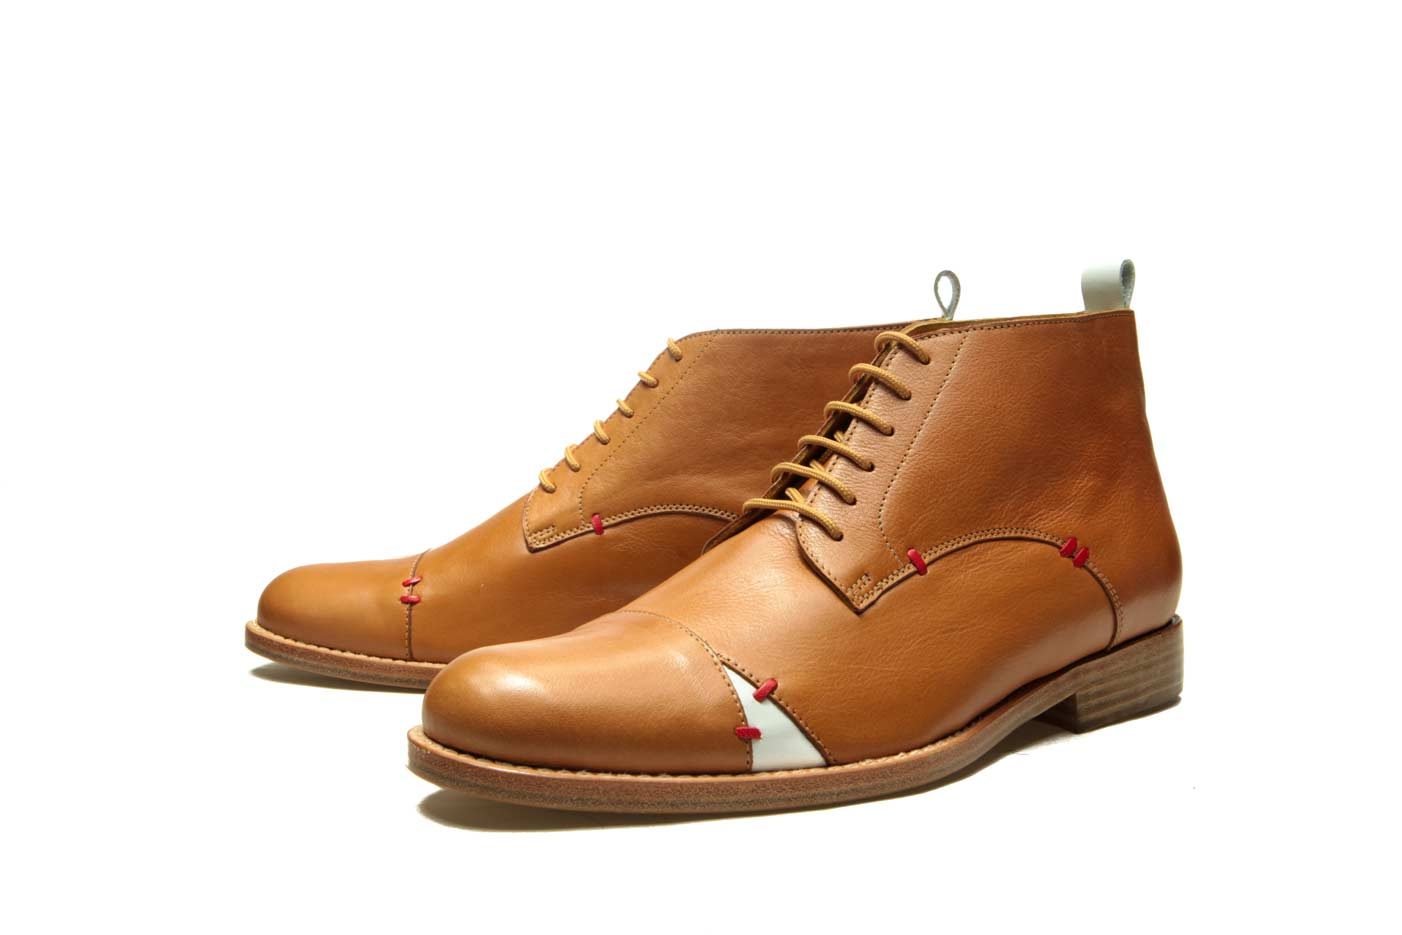 Mens brown ankle boots   Handmade Milenika shoes